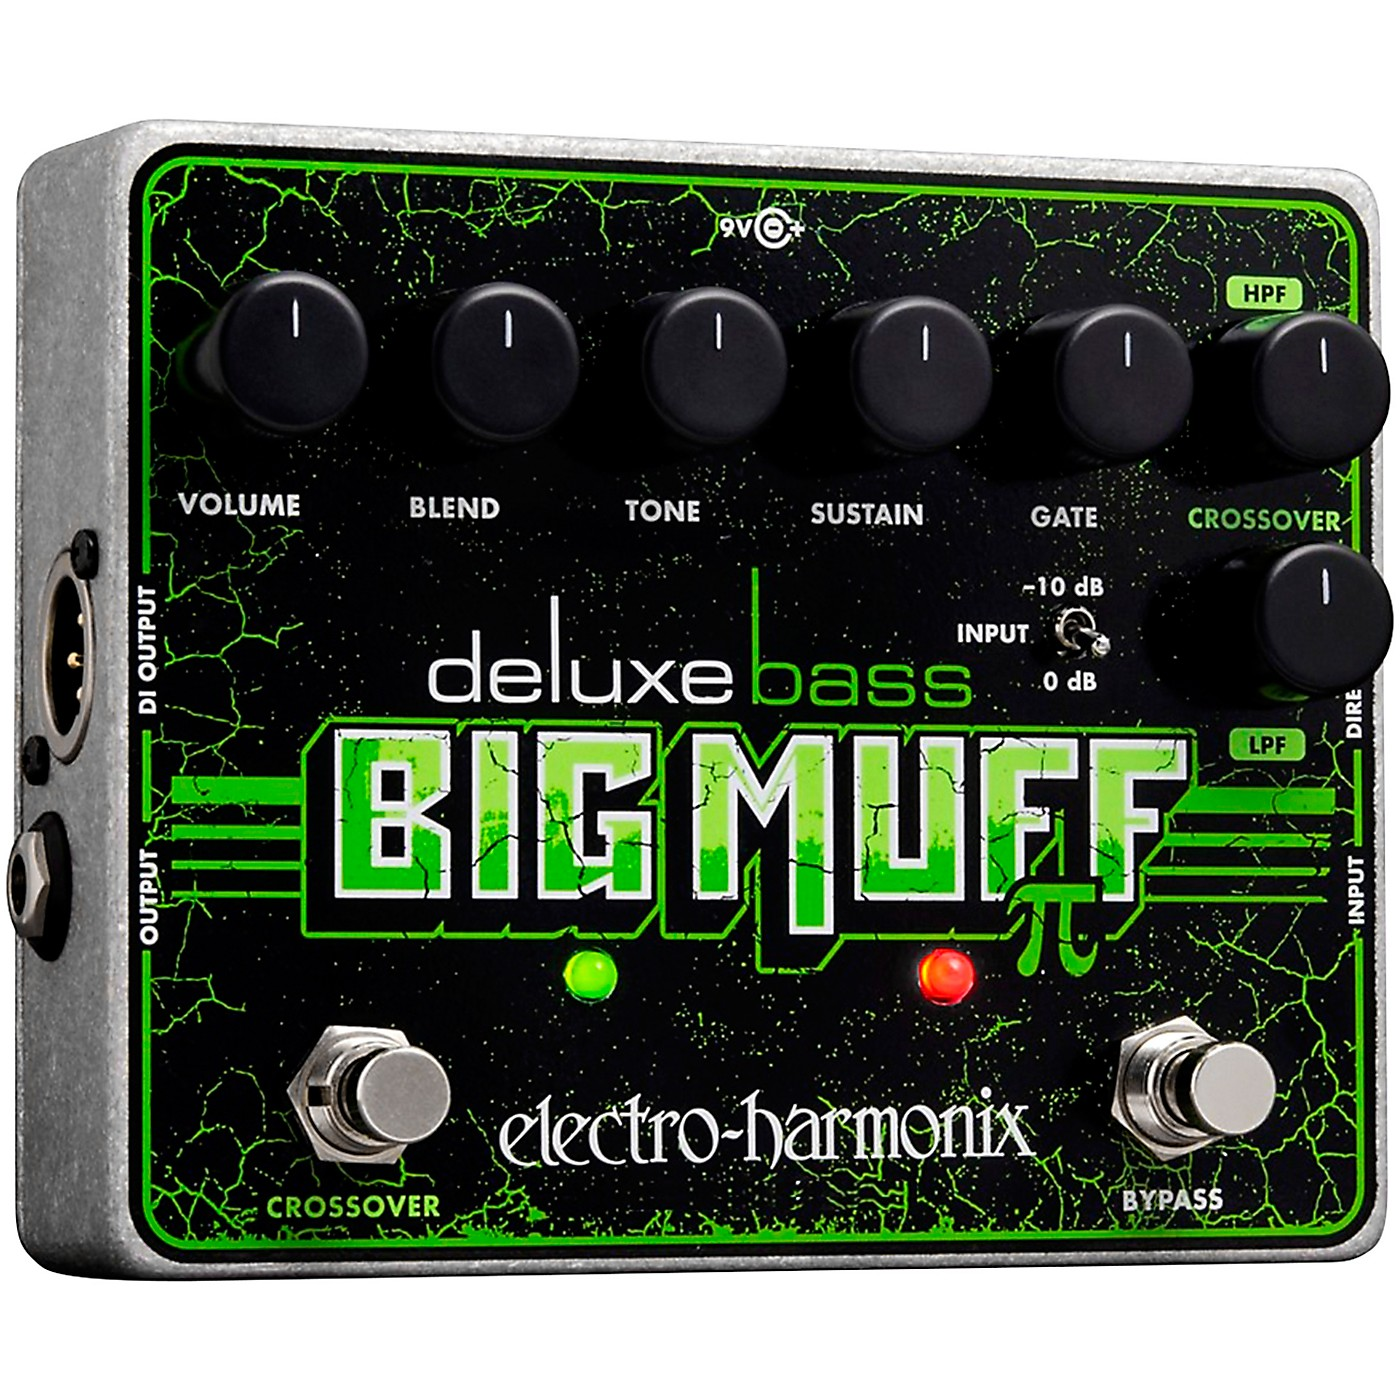 Electro-Harmonix Deluxe Bass Big Muff Pi Distortion Effects Pedal thumbnail